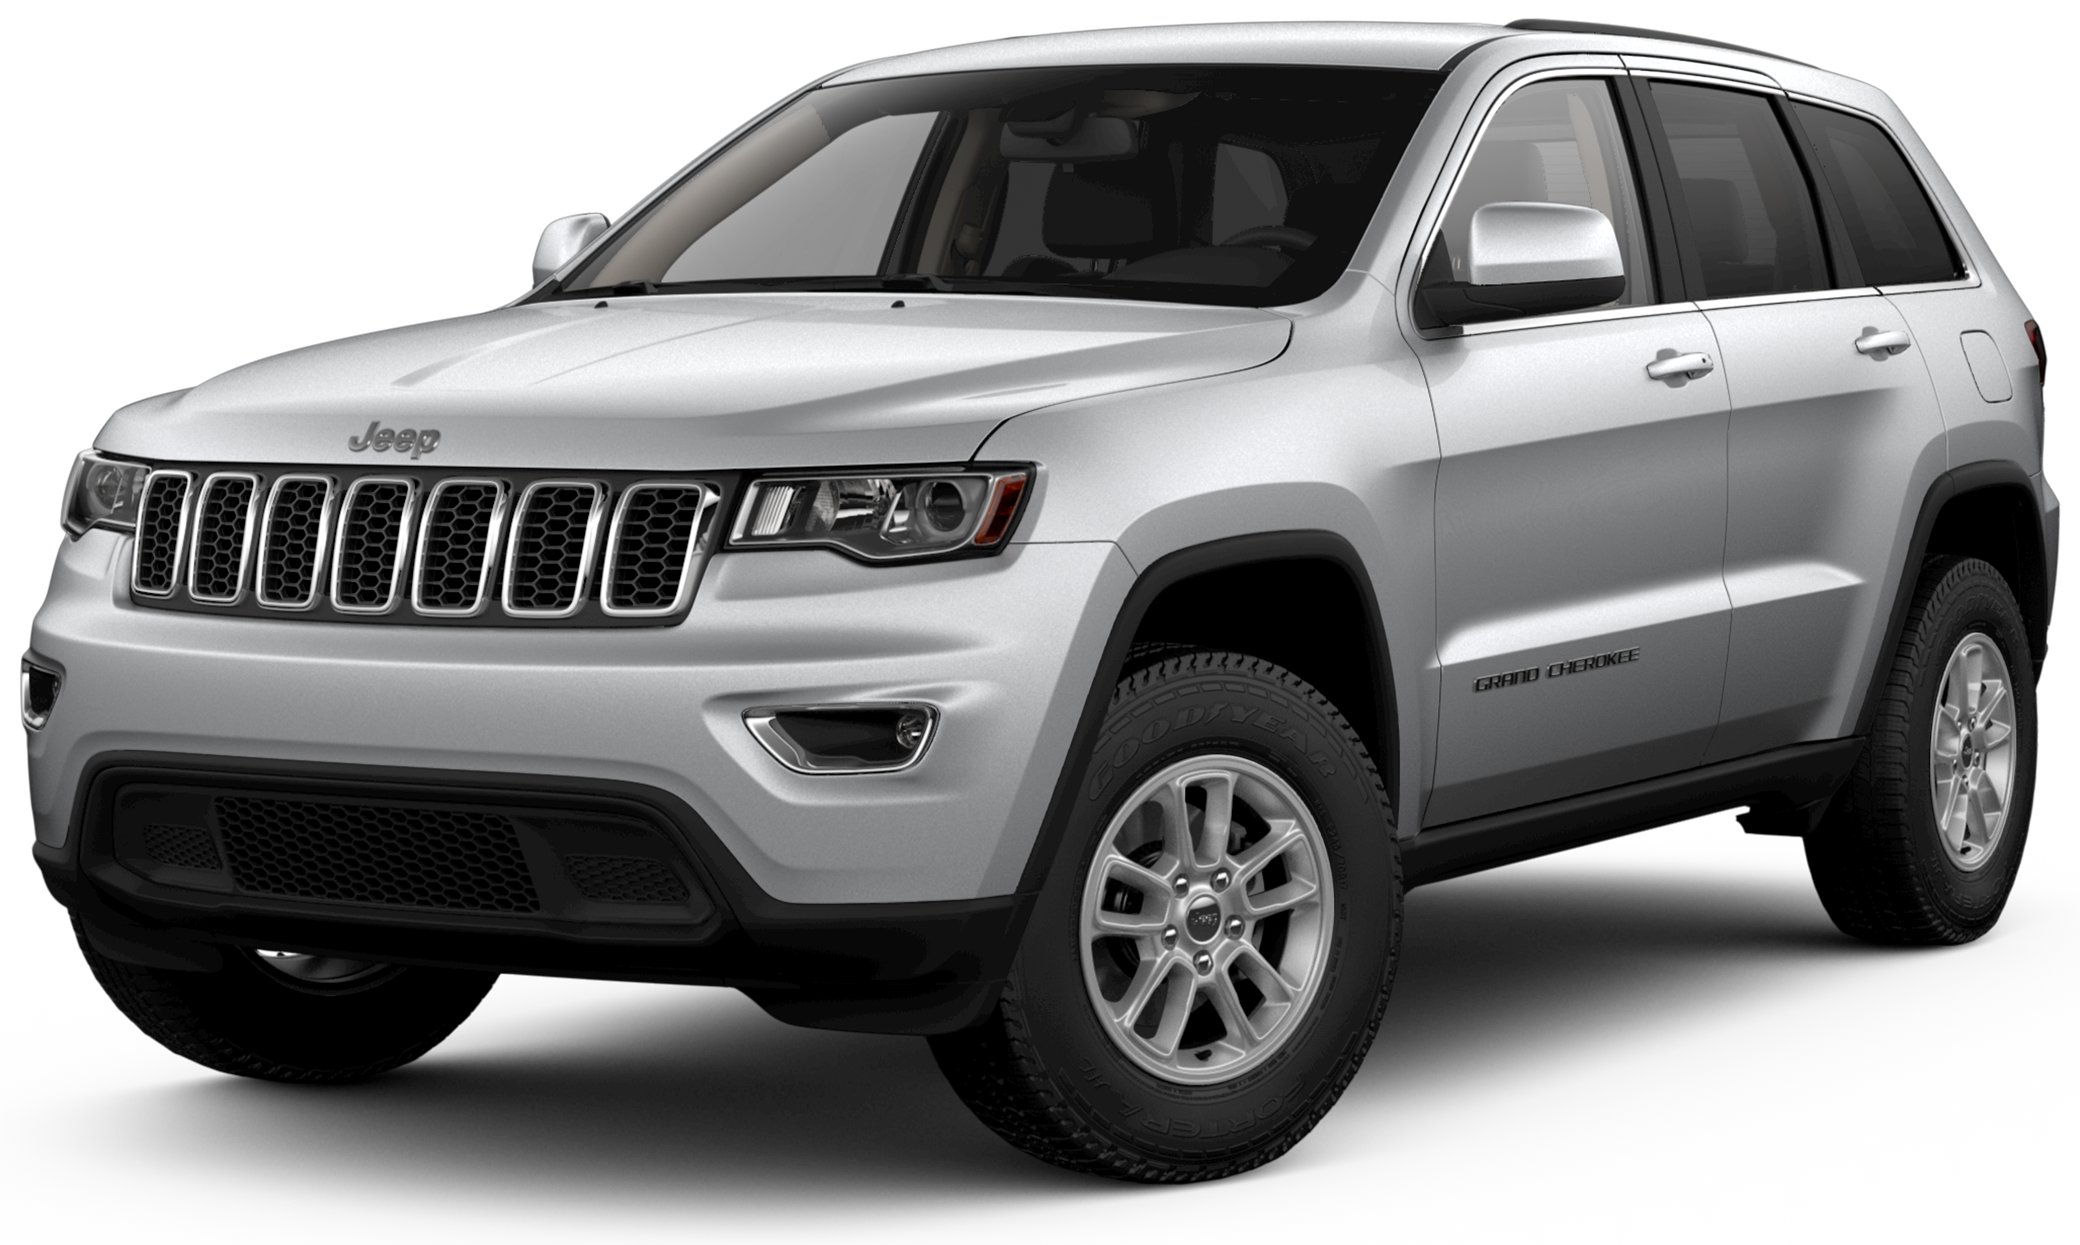 2019 2020 Chrysler Dodge Jeep Ram Jeep Chrysler Ford